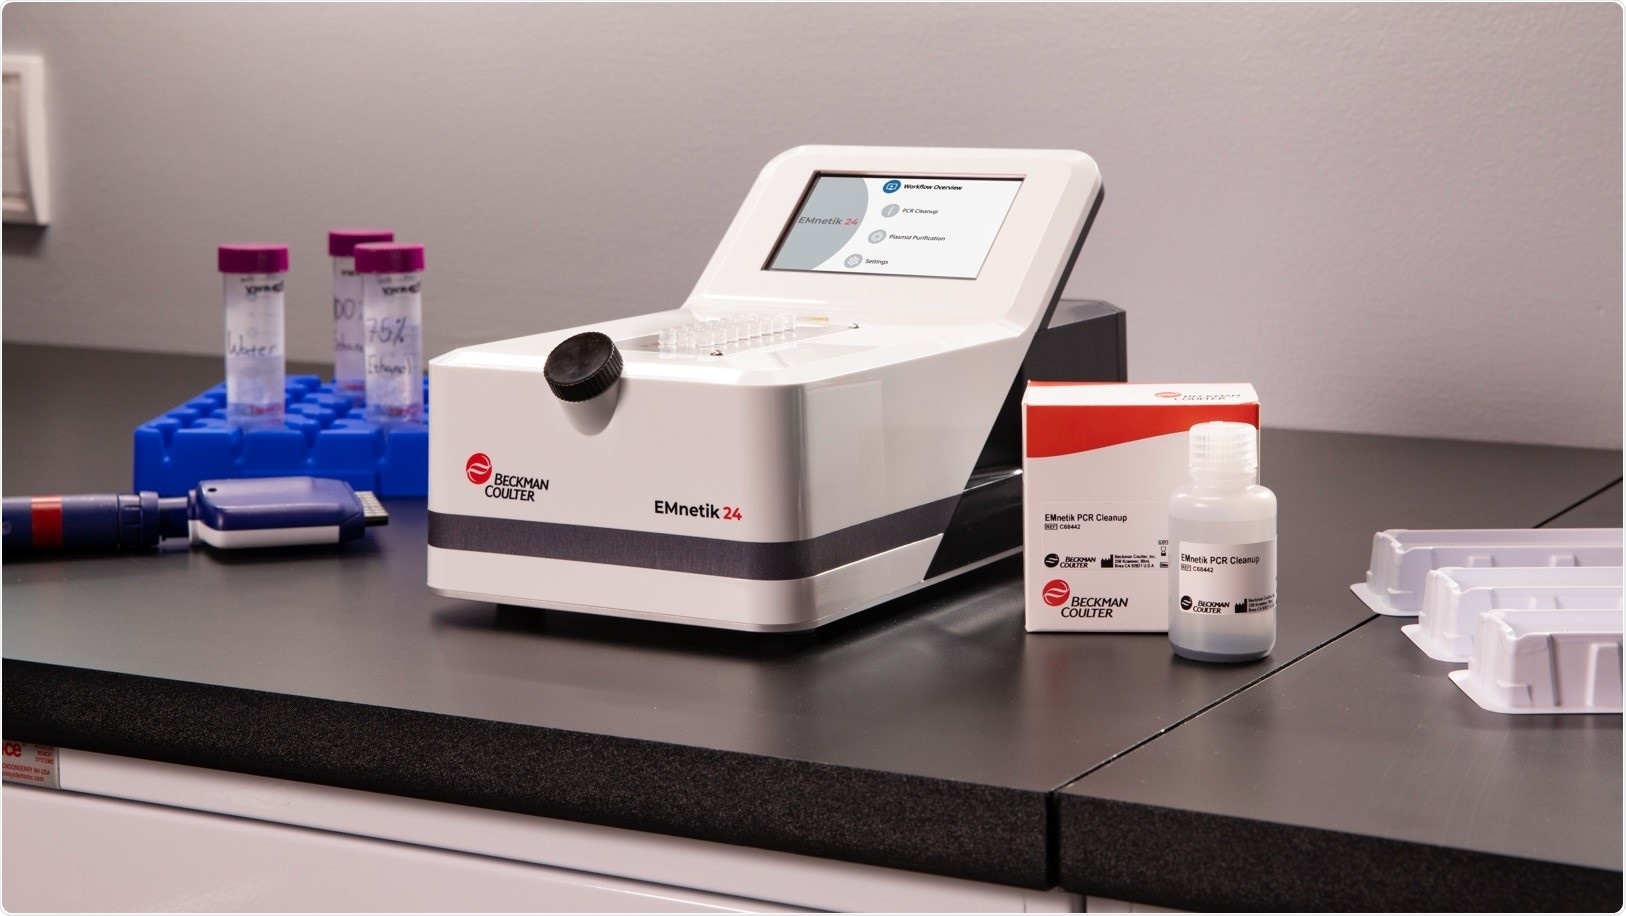 Beckman Coulter Life Sciences debuts the future of simplified PCR cleanup and plasmid prep with the EMnetik system